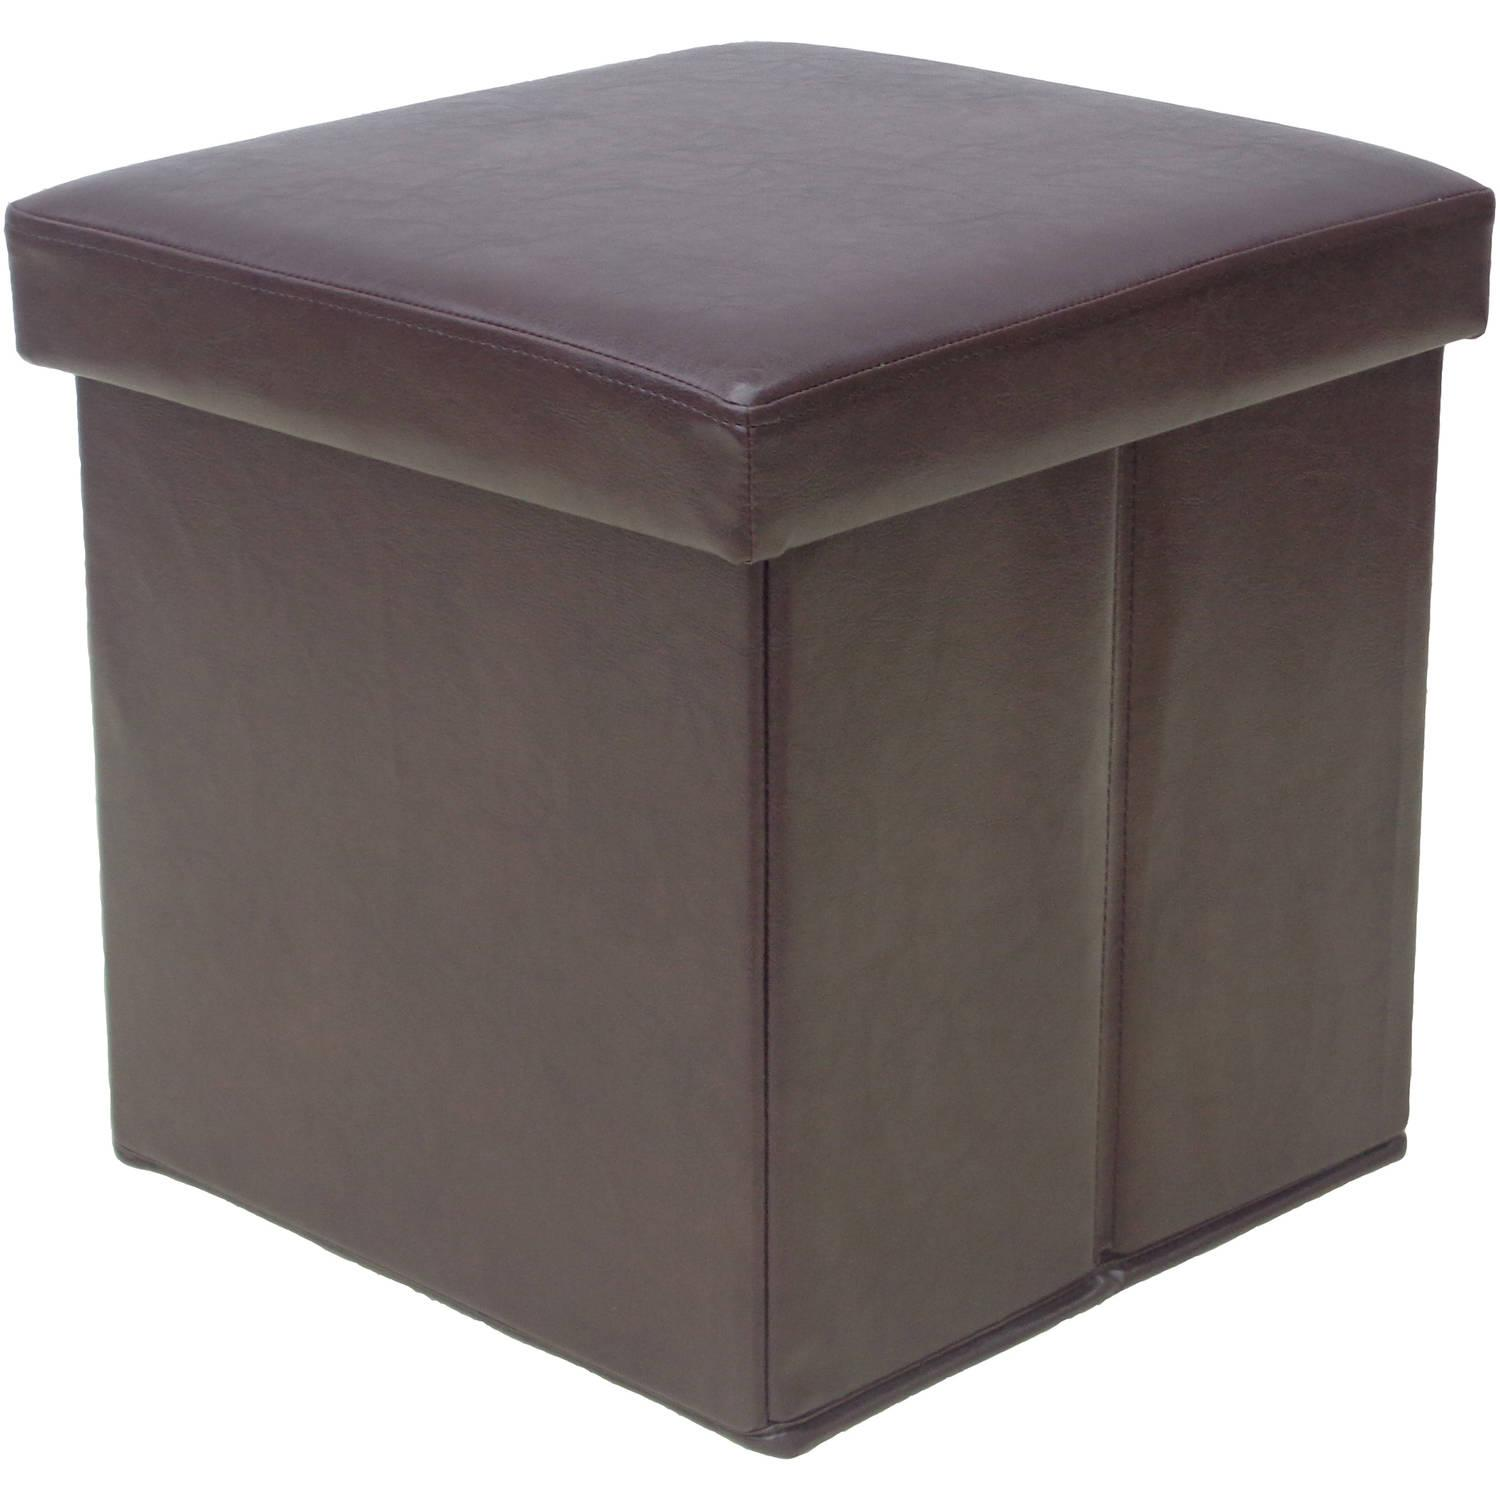 Mainstays Collapsible Storage Ottoman